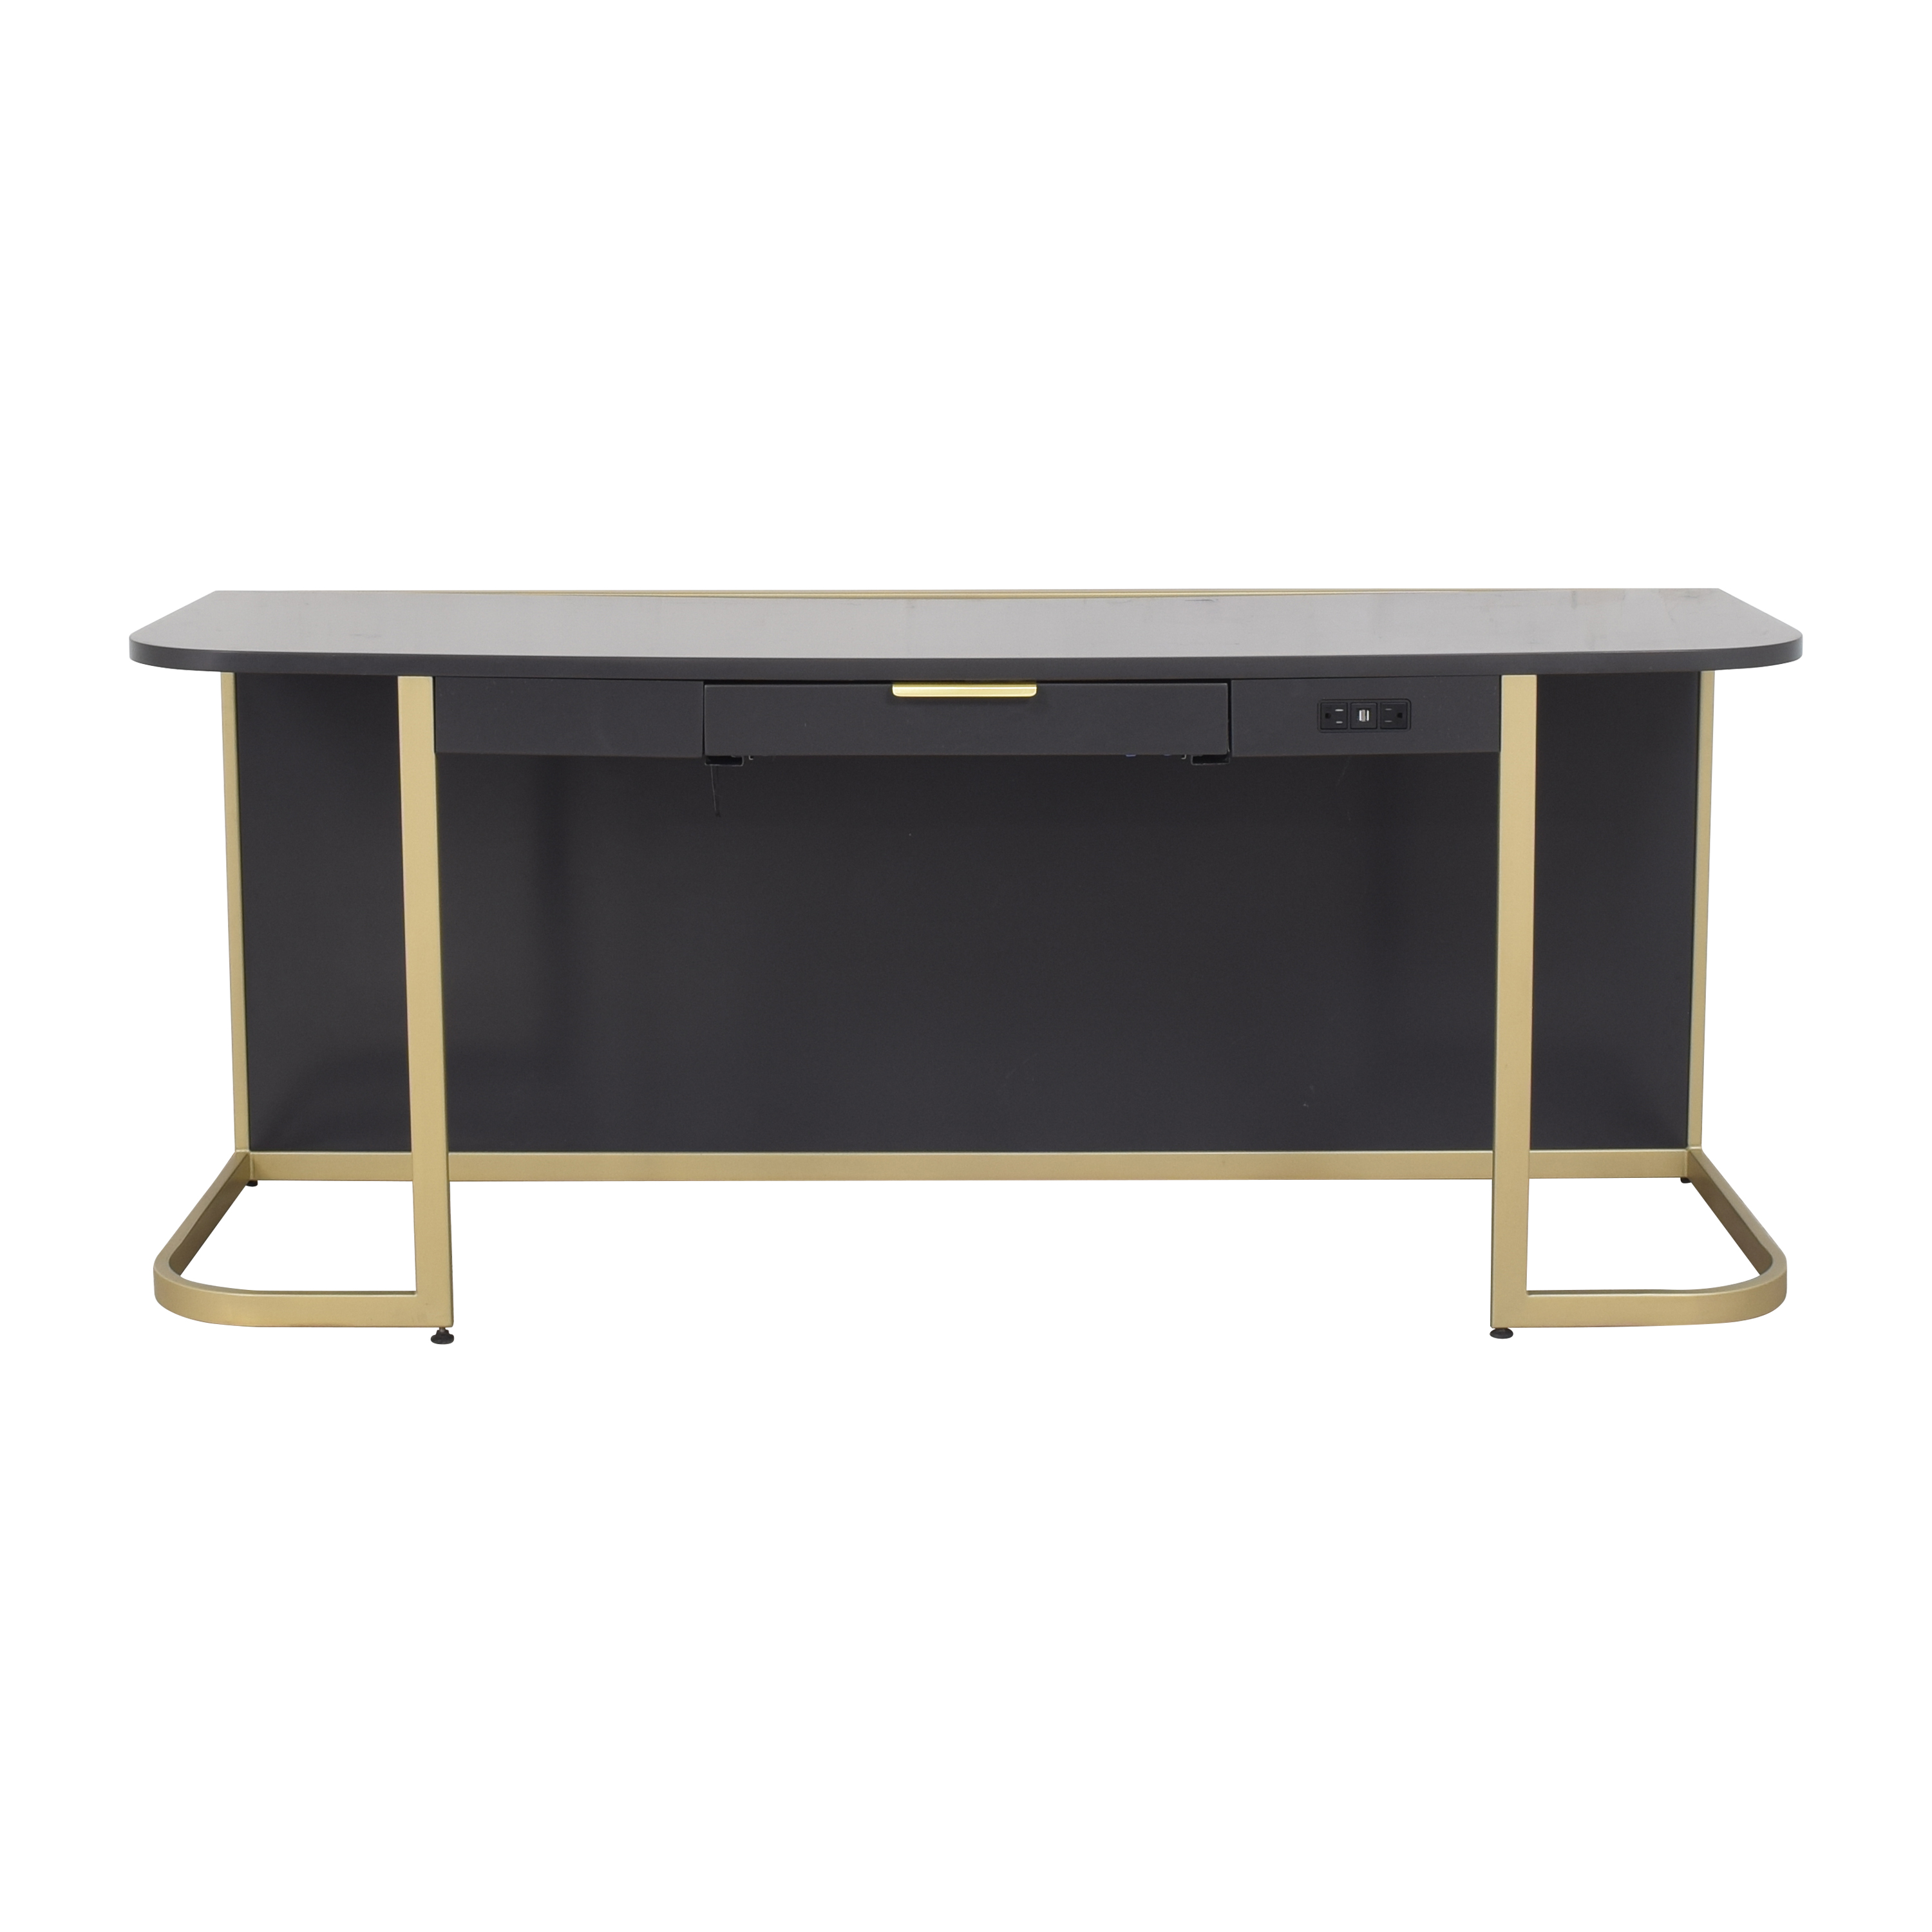 The New Traditionalists The New Traditionalists Modern Desk on sale